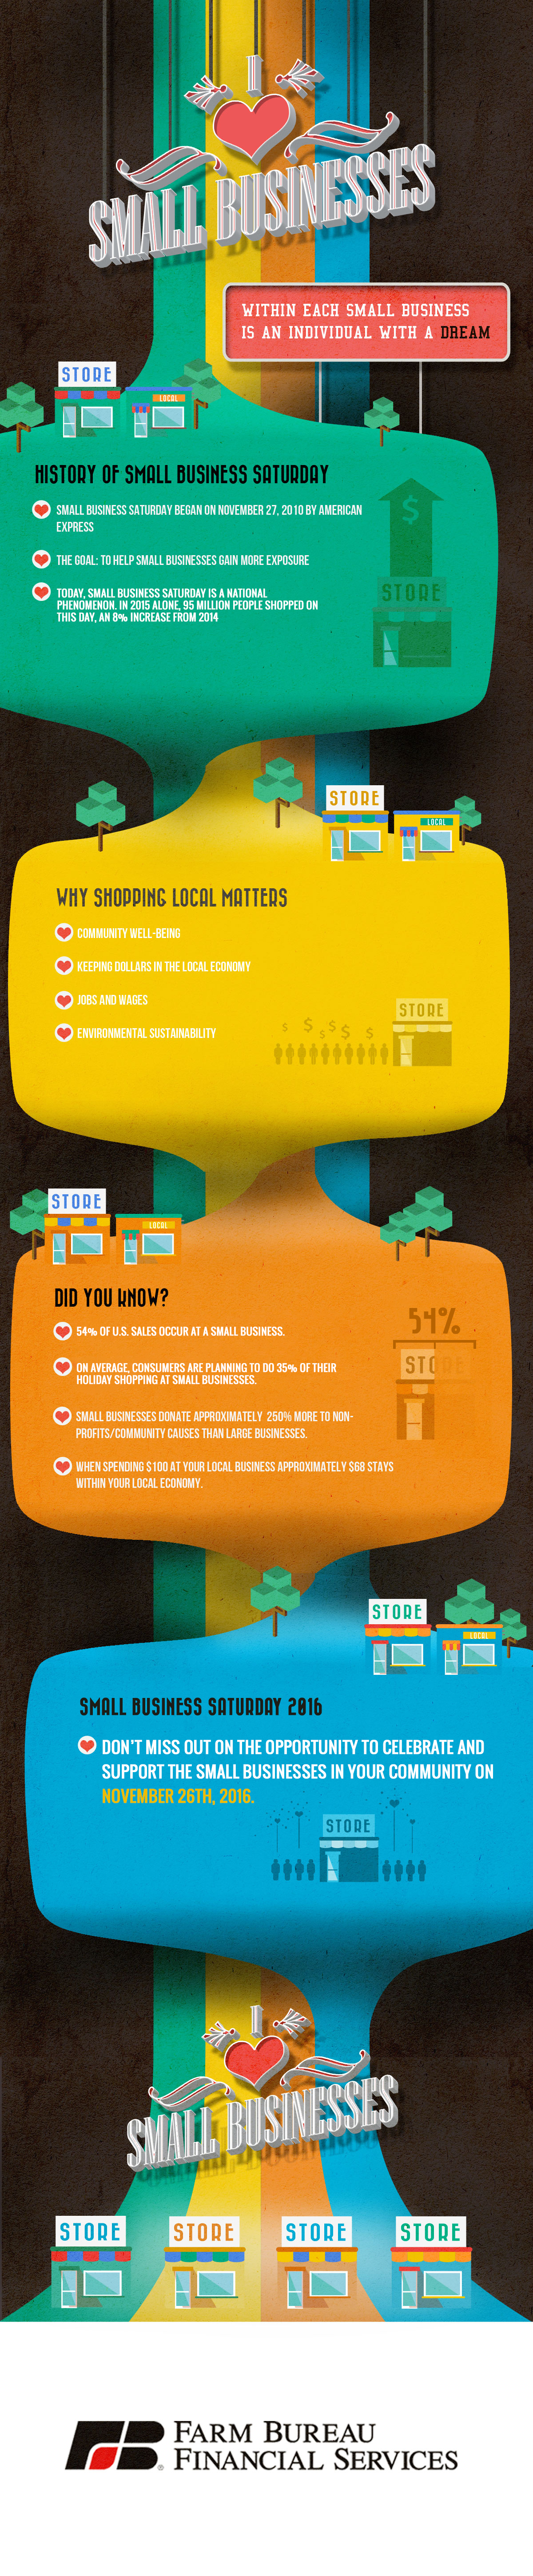 infographic-small-businesses-2016-V2